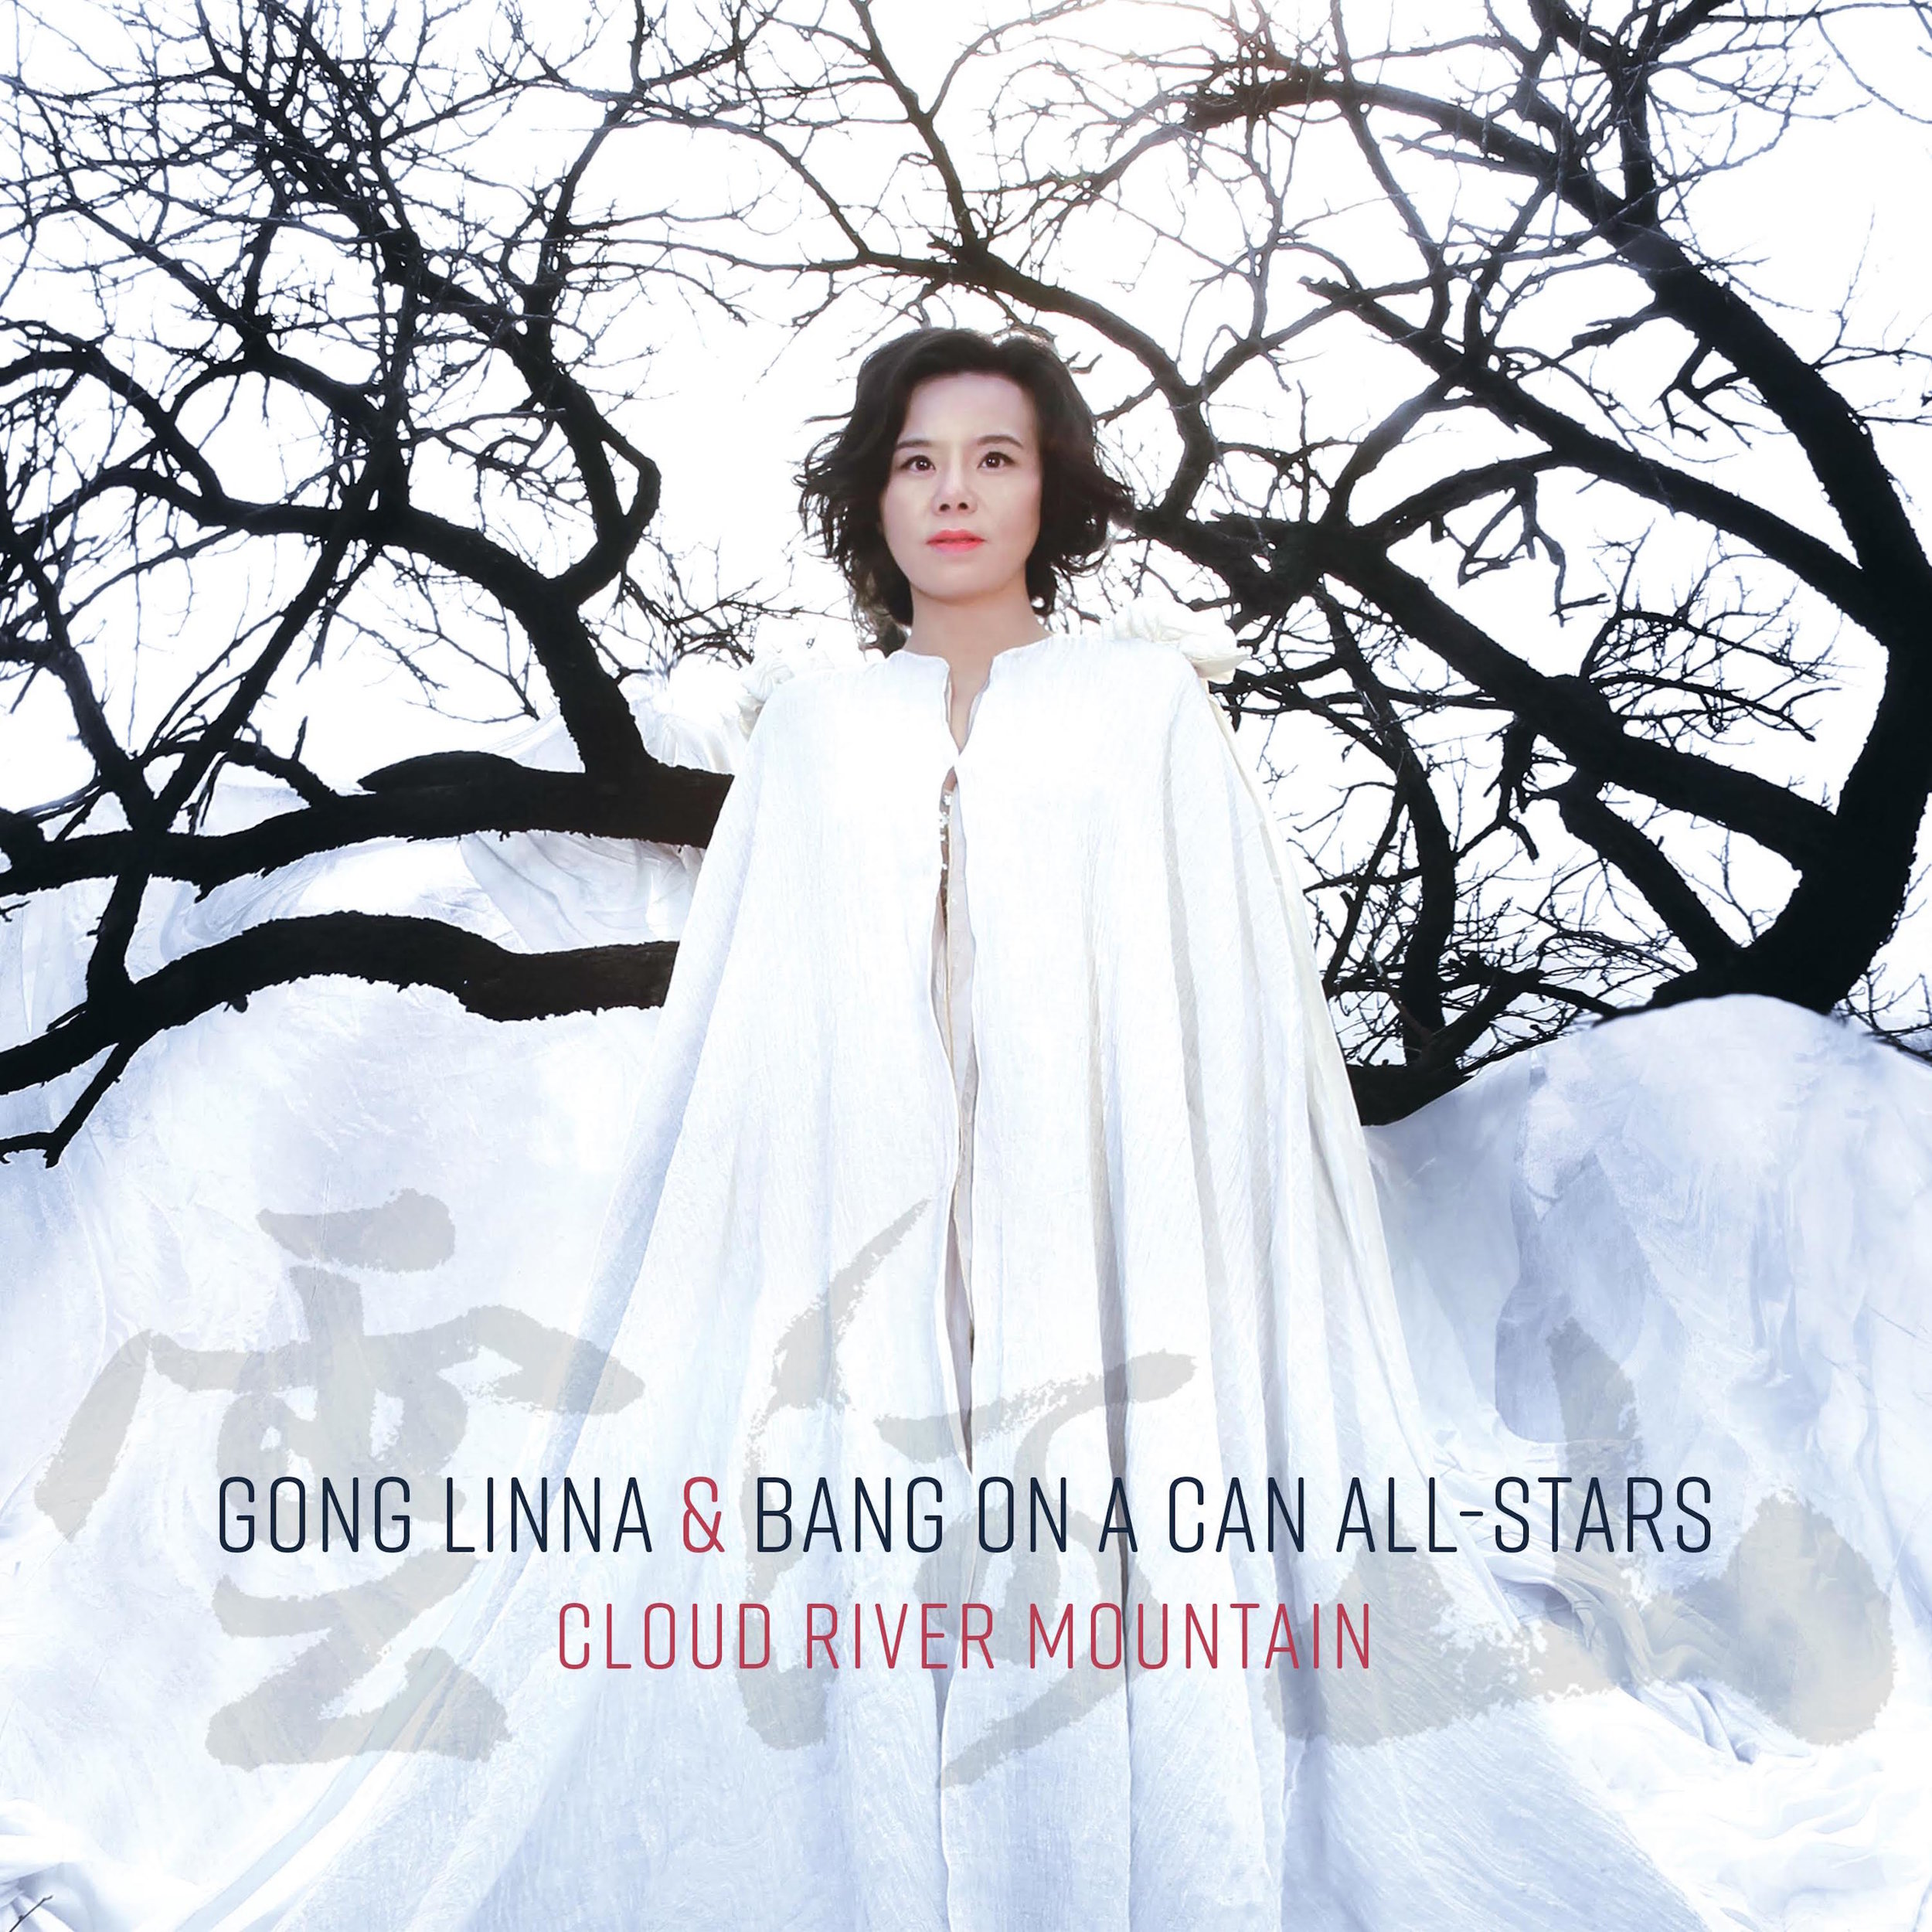 Gong Linna & Bang on a Can All-Stars –  Cloud River Mountain